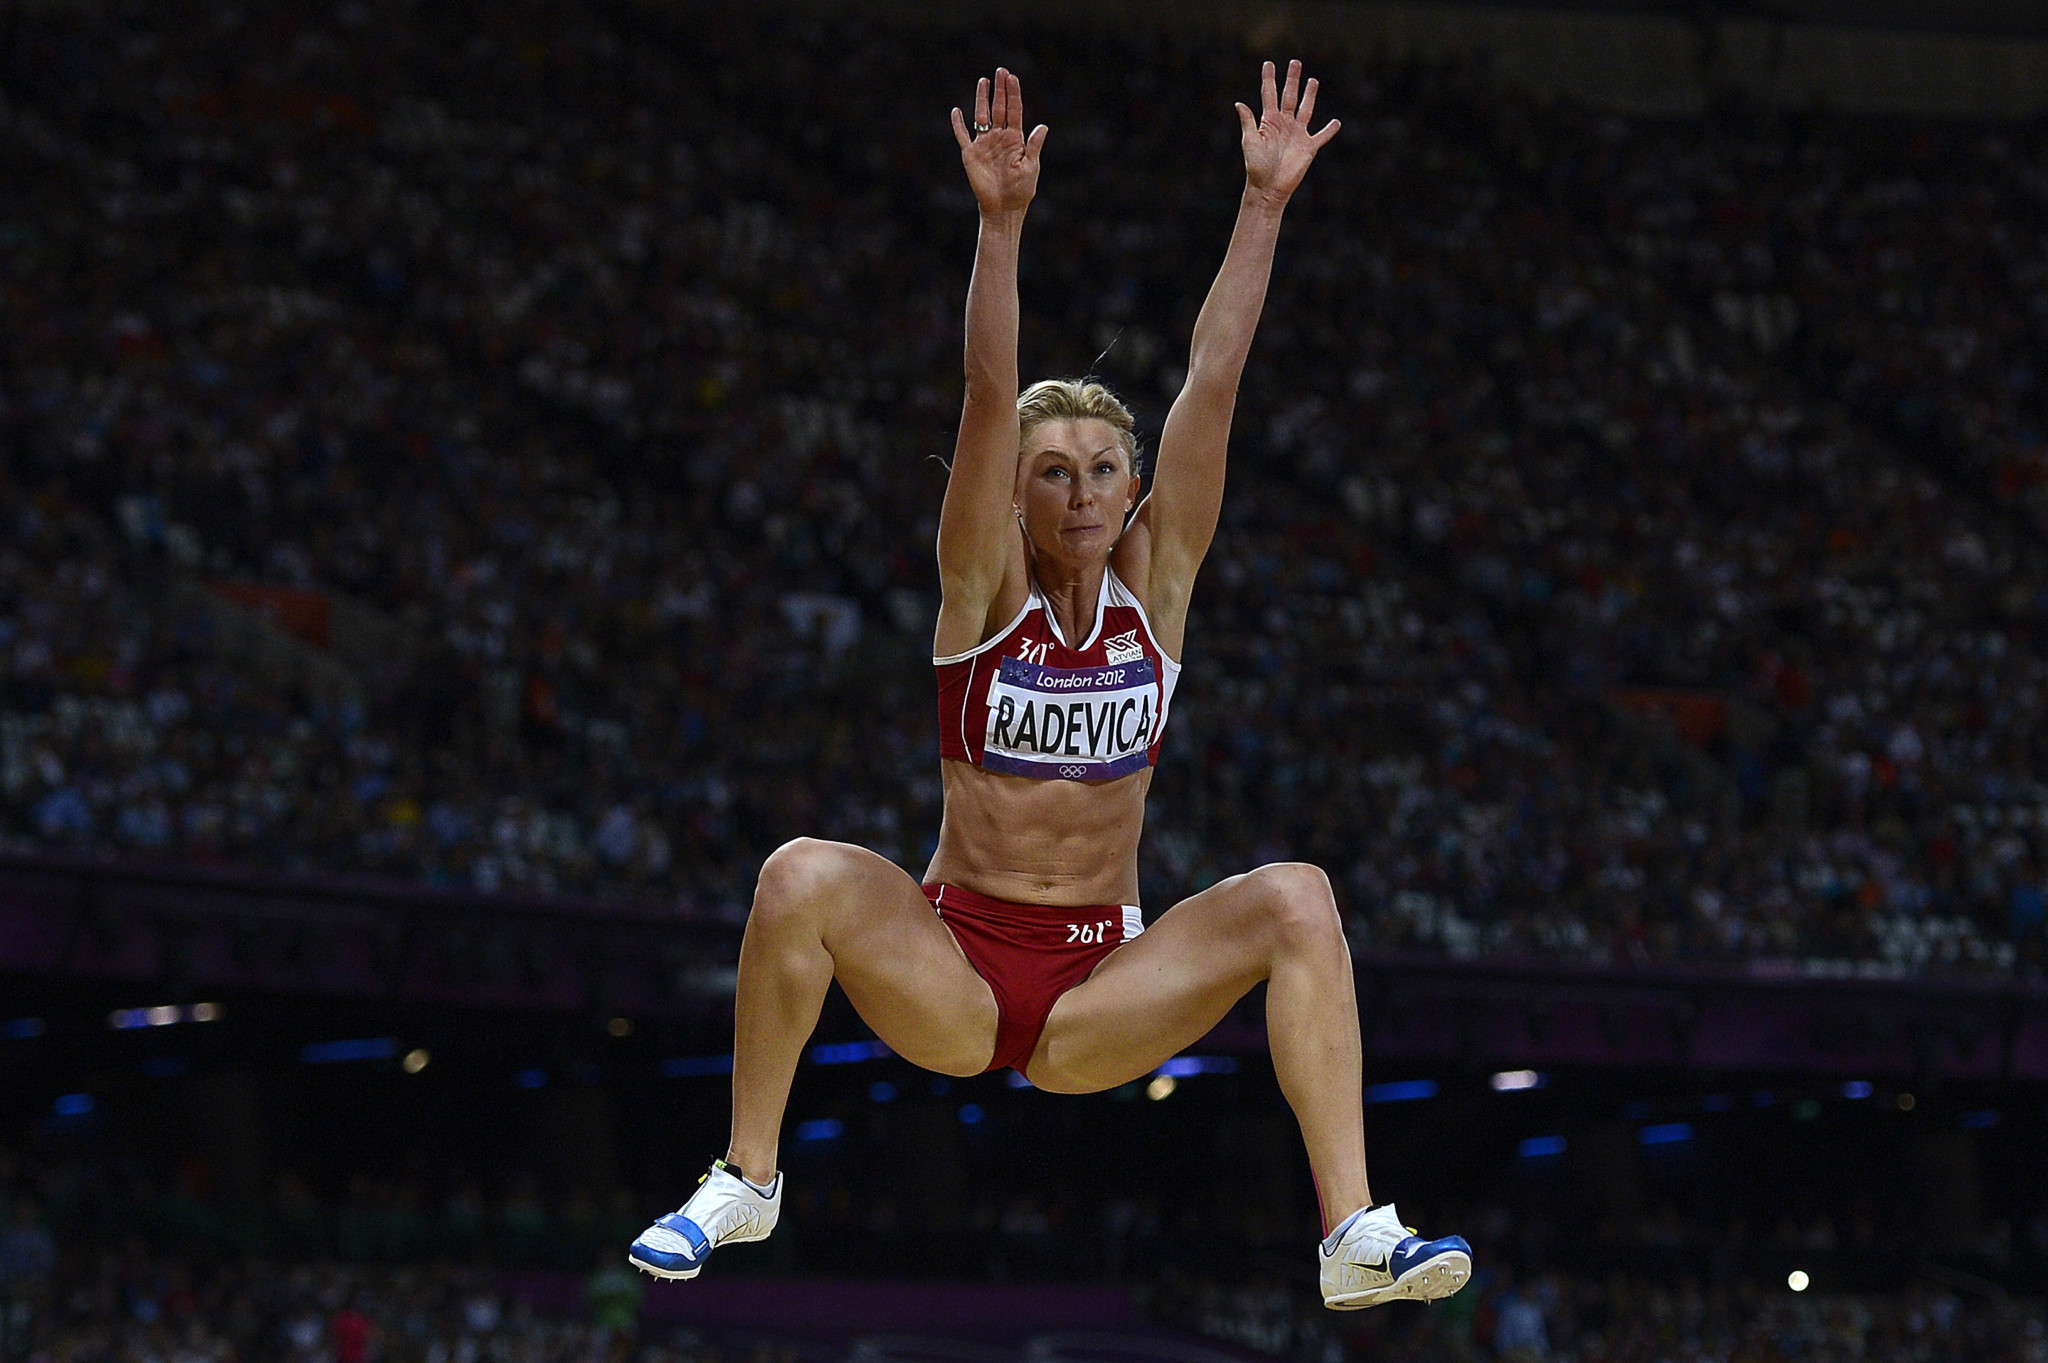 Latvian long jumper and Armenian weightlifter disqualified from London 2012 Olympics following retest of samples